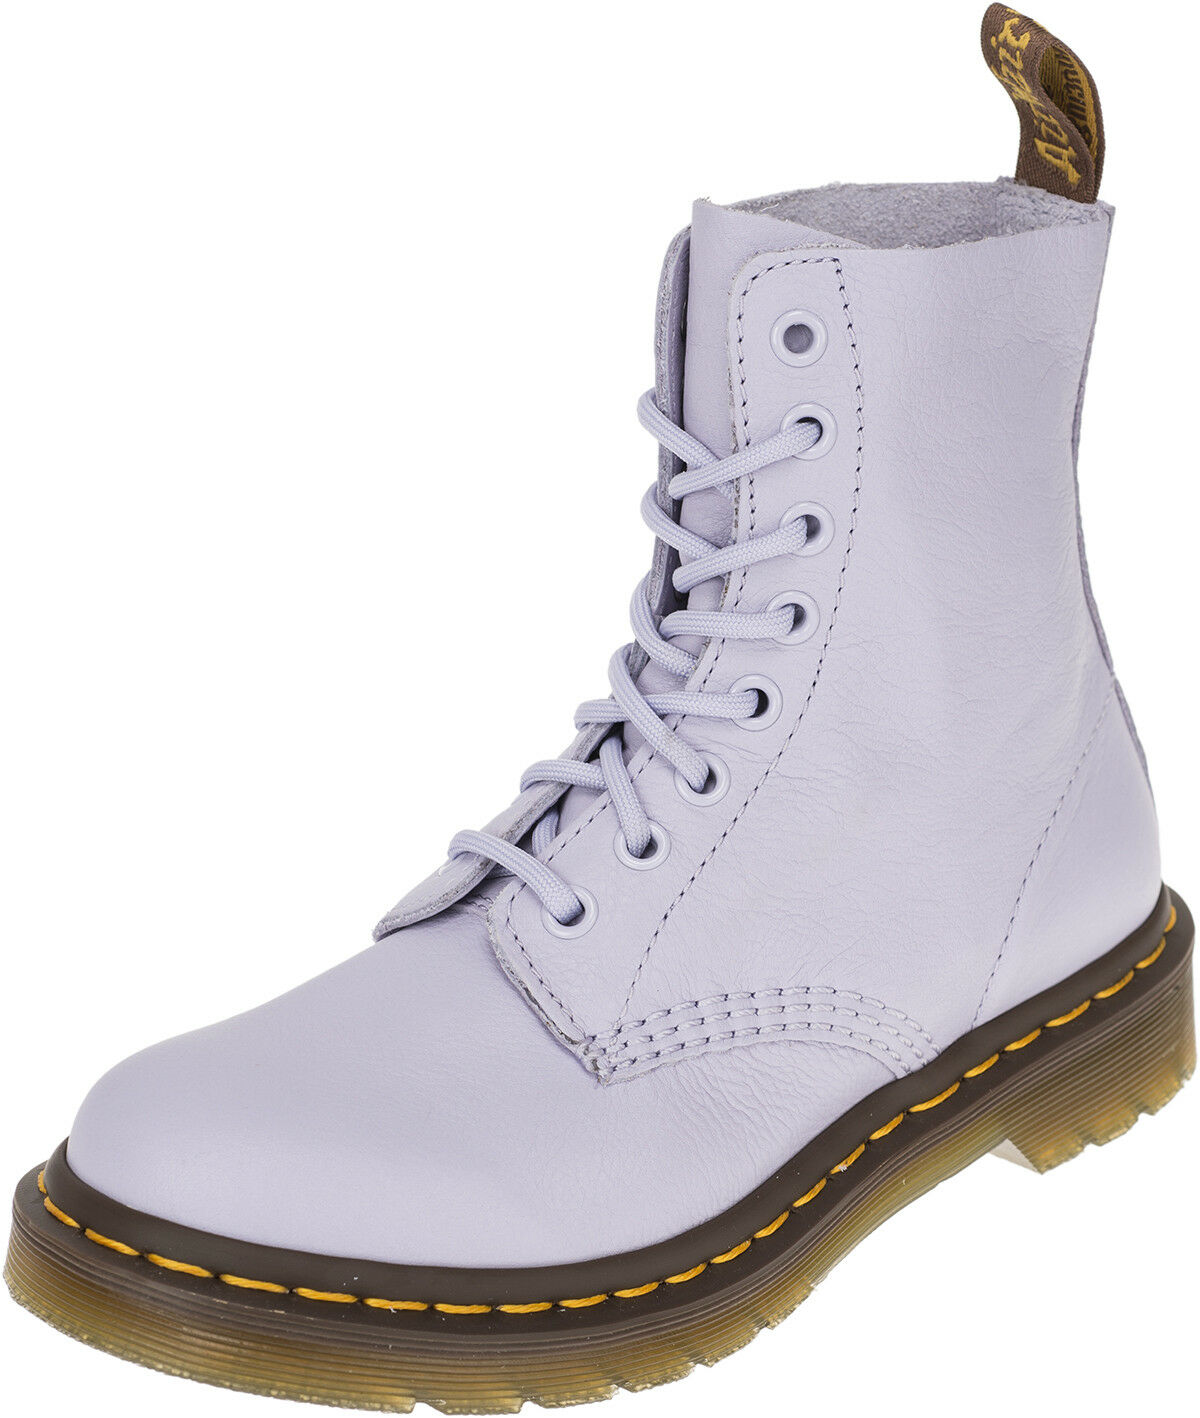 Grandes zapatos con descuento Dr. Martens PASCAL 8-Eye PURPLE HEATHER Boots STIEFEL Schuhe Rockabilly